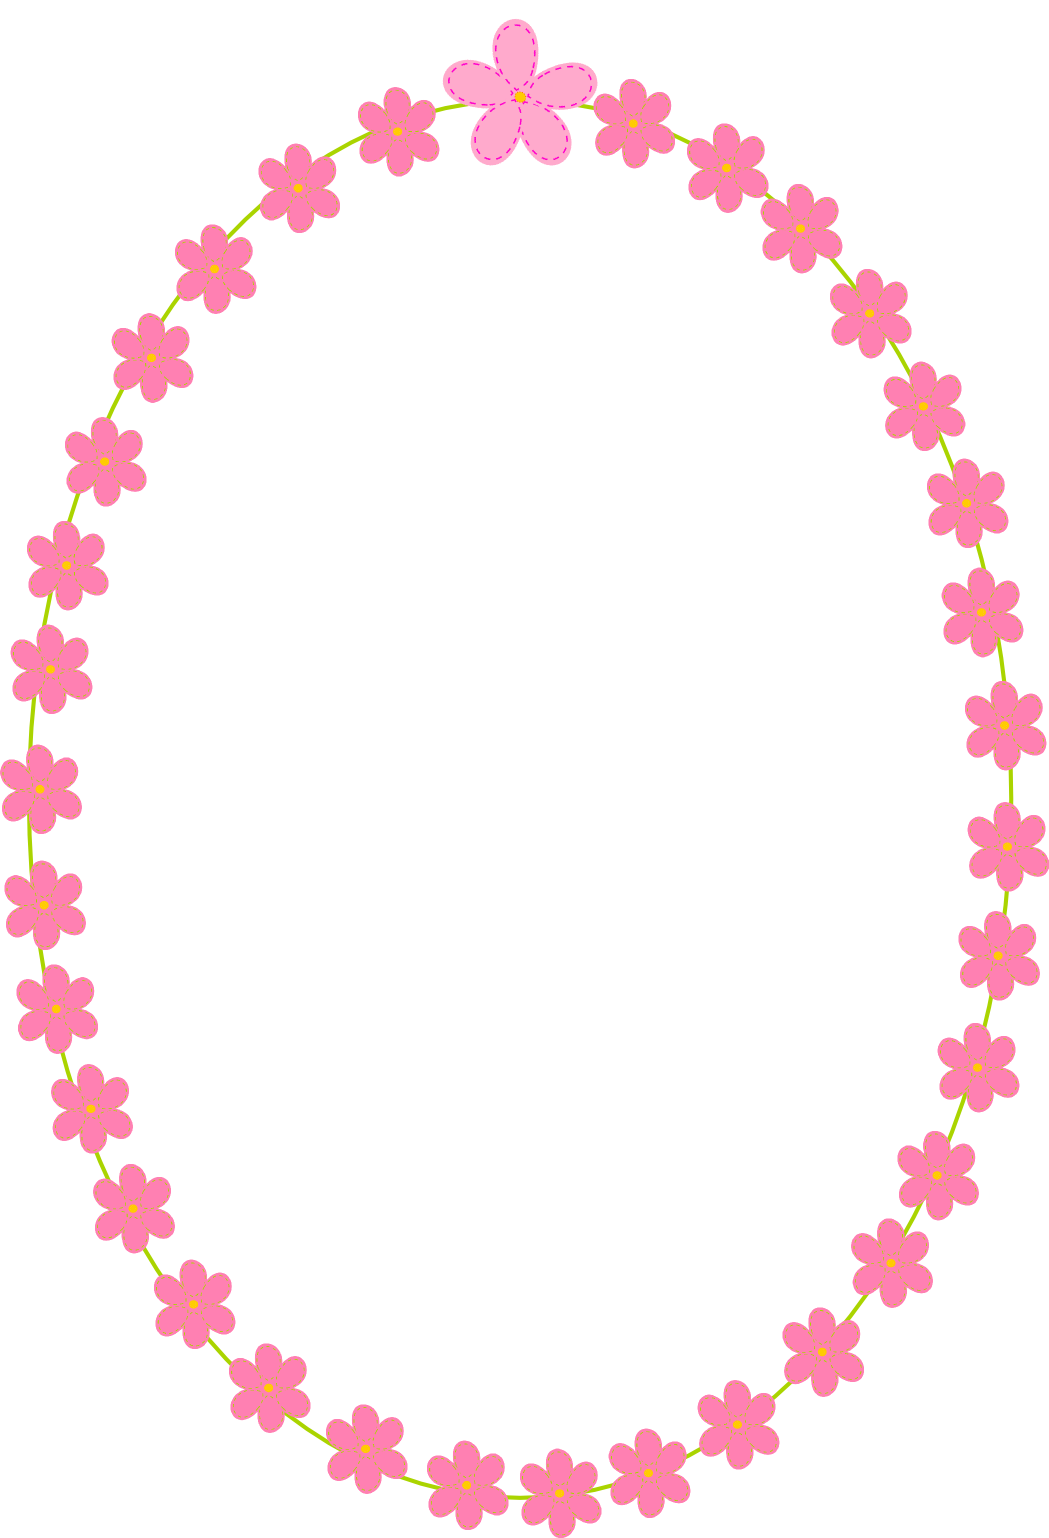 Flower border clipart no background png free White And Pink Flowers Border Png - 5641 - TransparentPNG png free